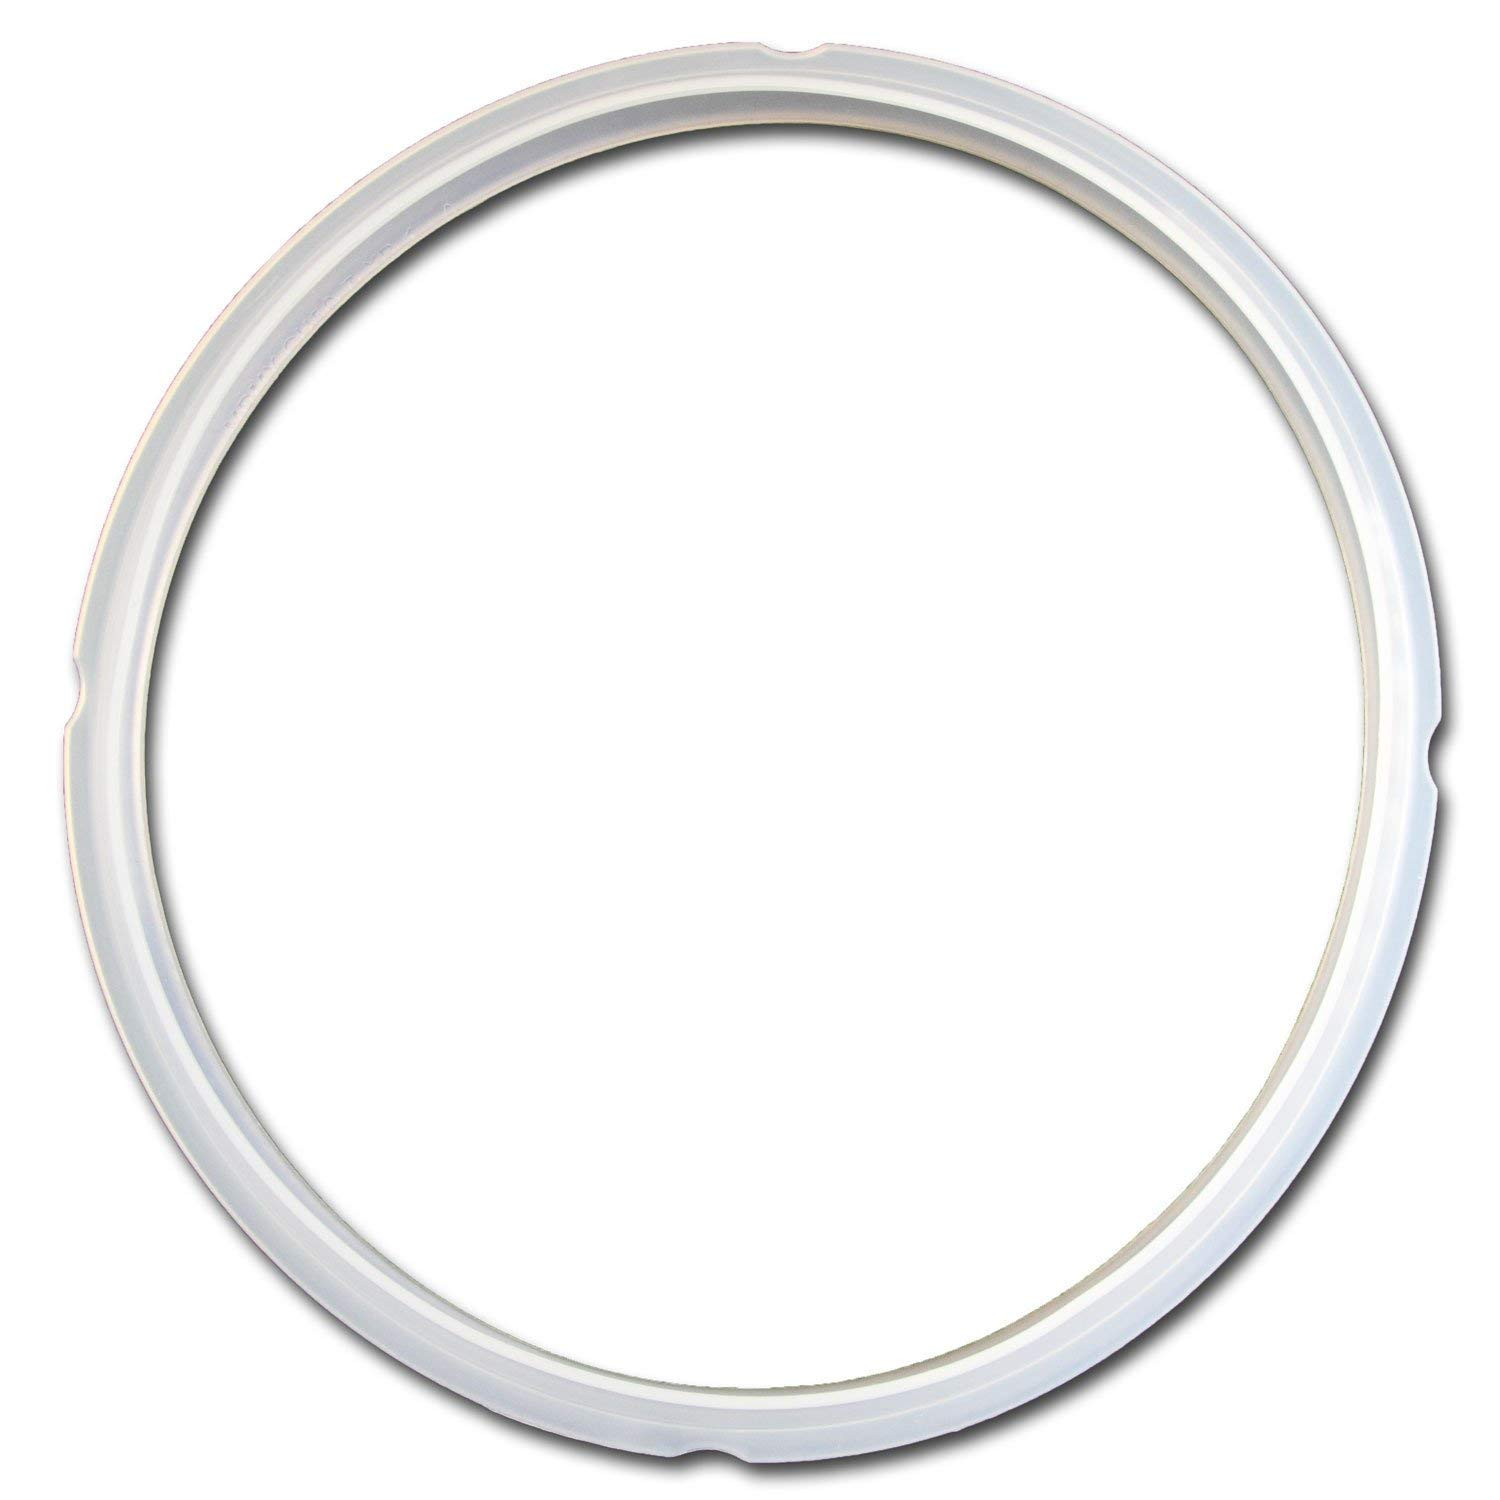 Rubber Gasket For Power Pressure Cookers (All 8 Quart Models)